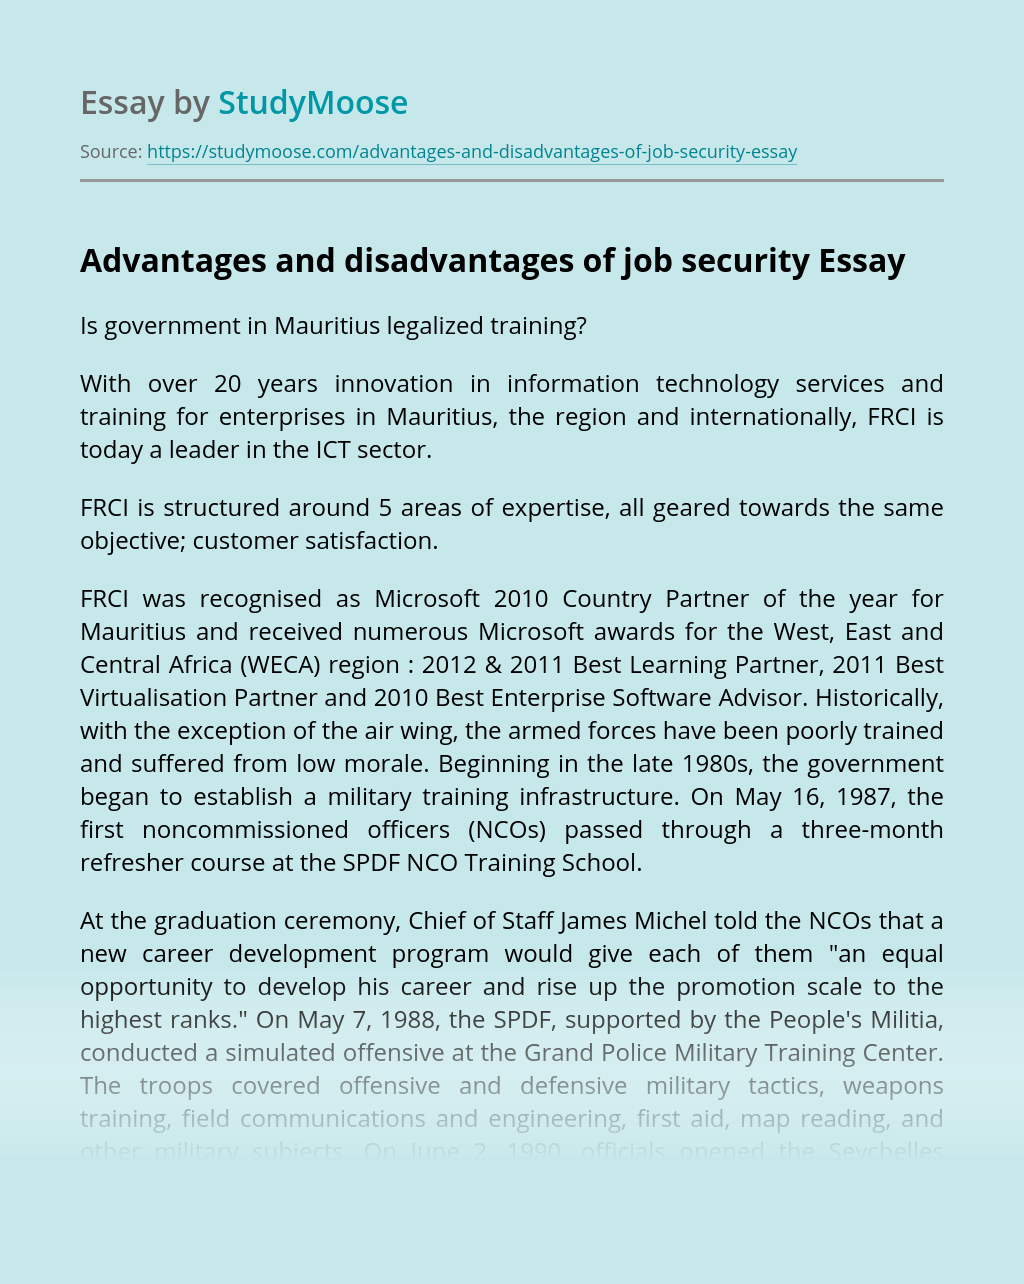 Advantages and disadvantages of job security